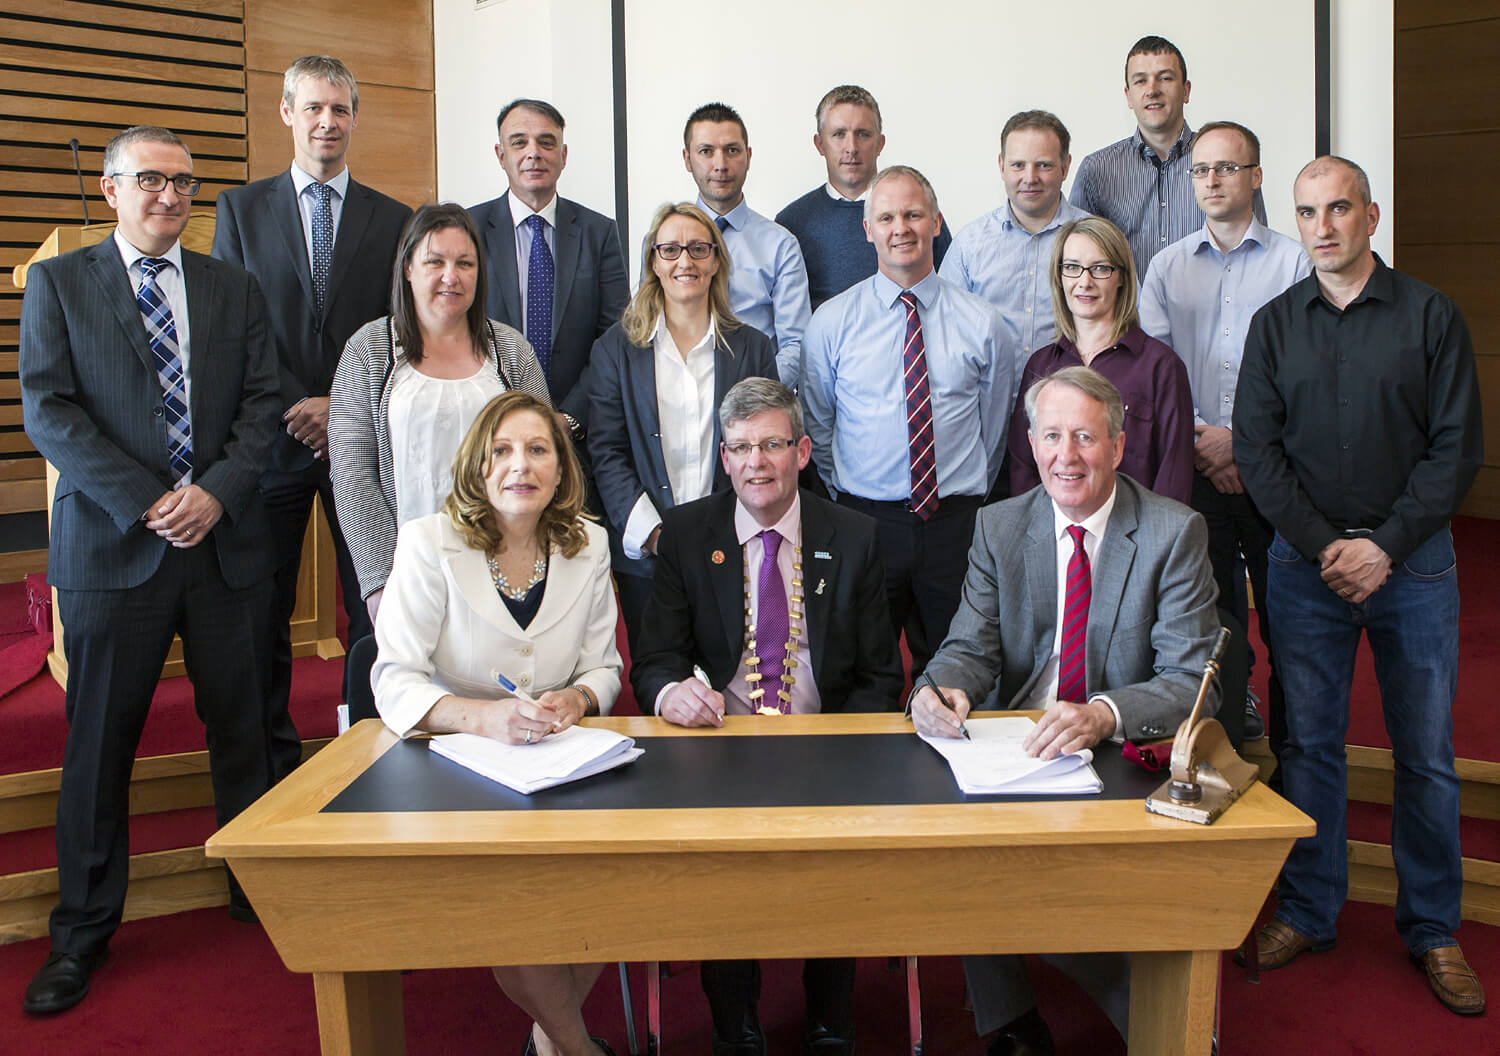 Contract signed for N4 Engineering Consultancy Services